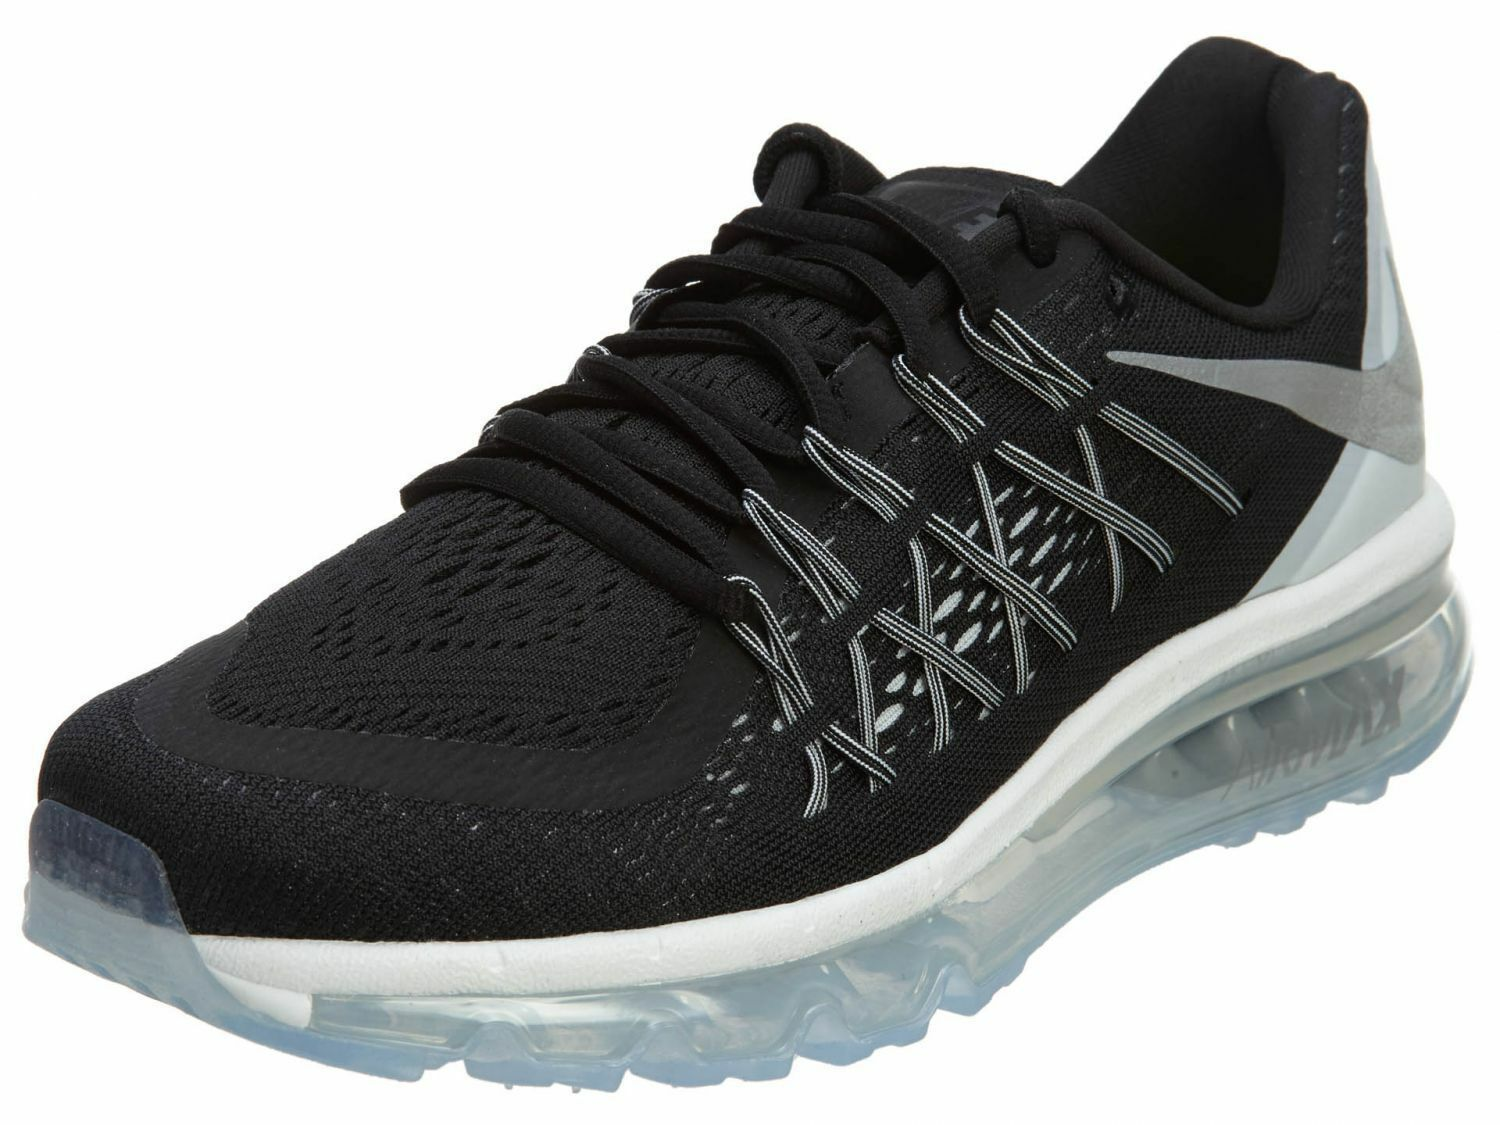 New Nike Women's Air Max 2018 Running Shoes Black/White/903-001